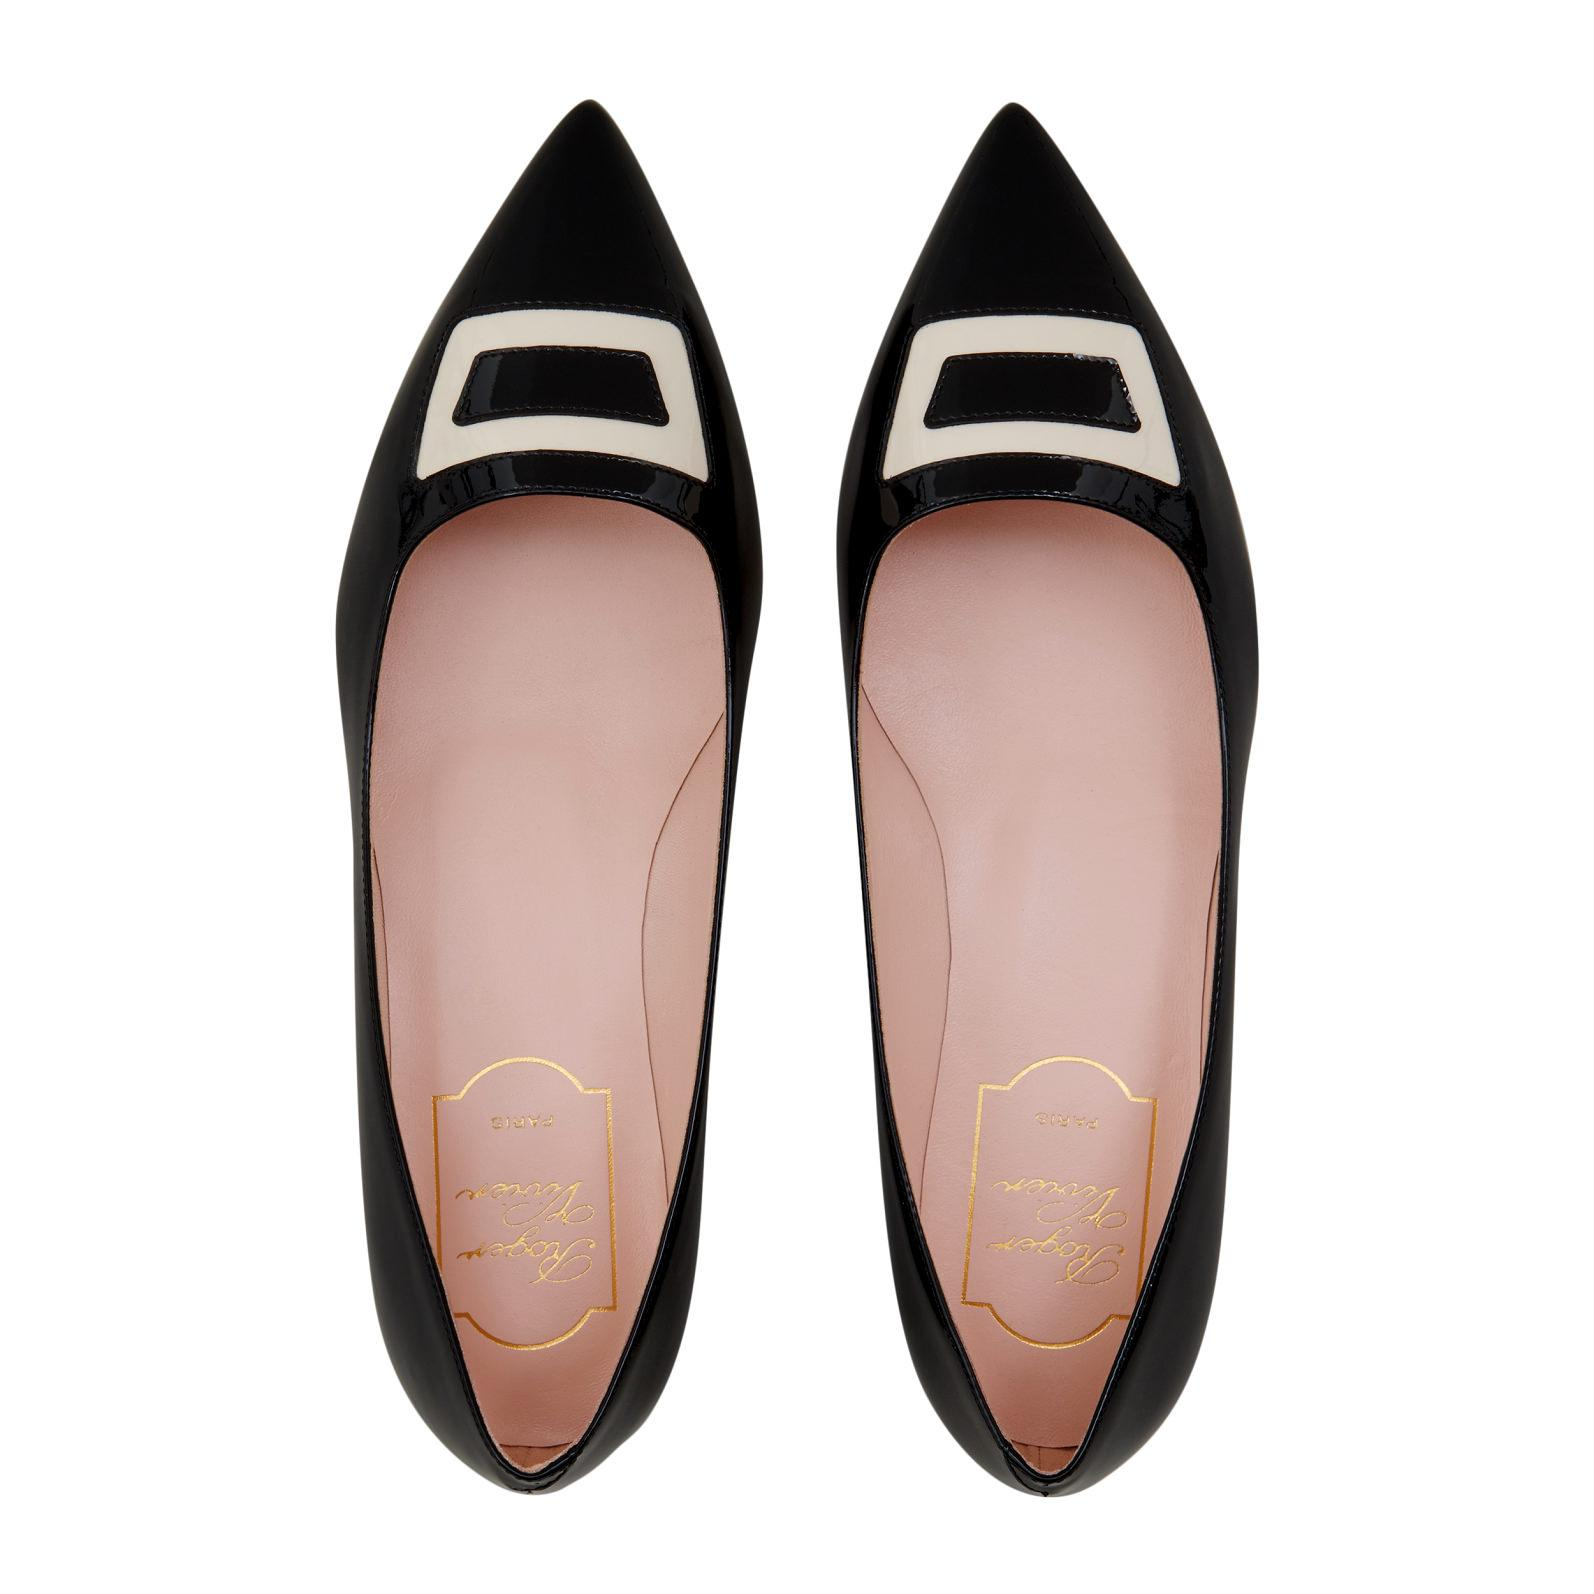 c66658b80 Roger Vivier Black Pointy Ballerina In Patent-leather